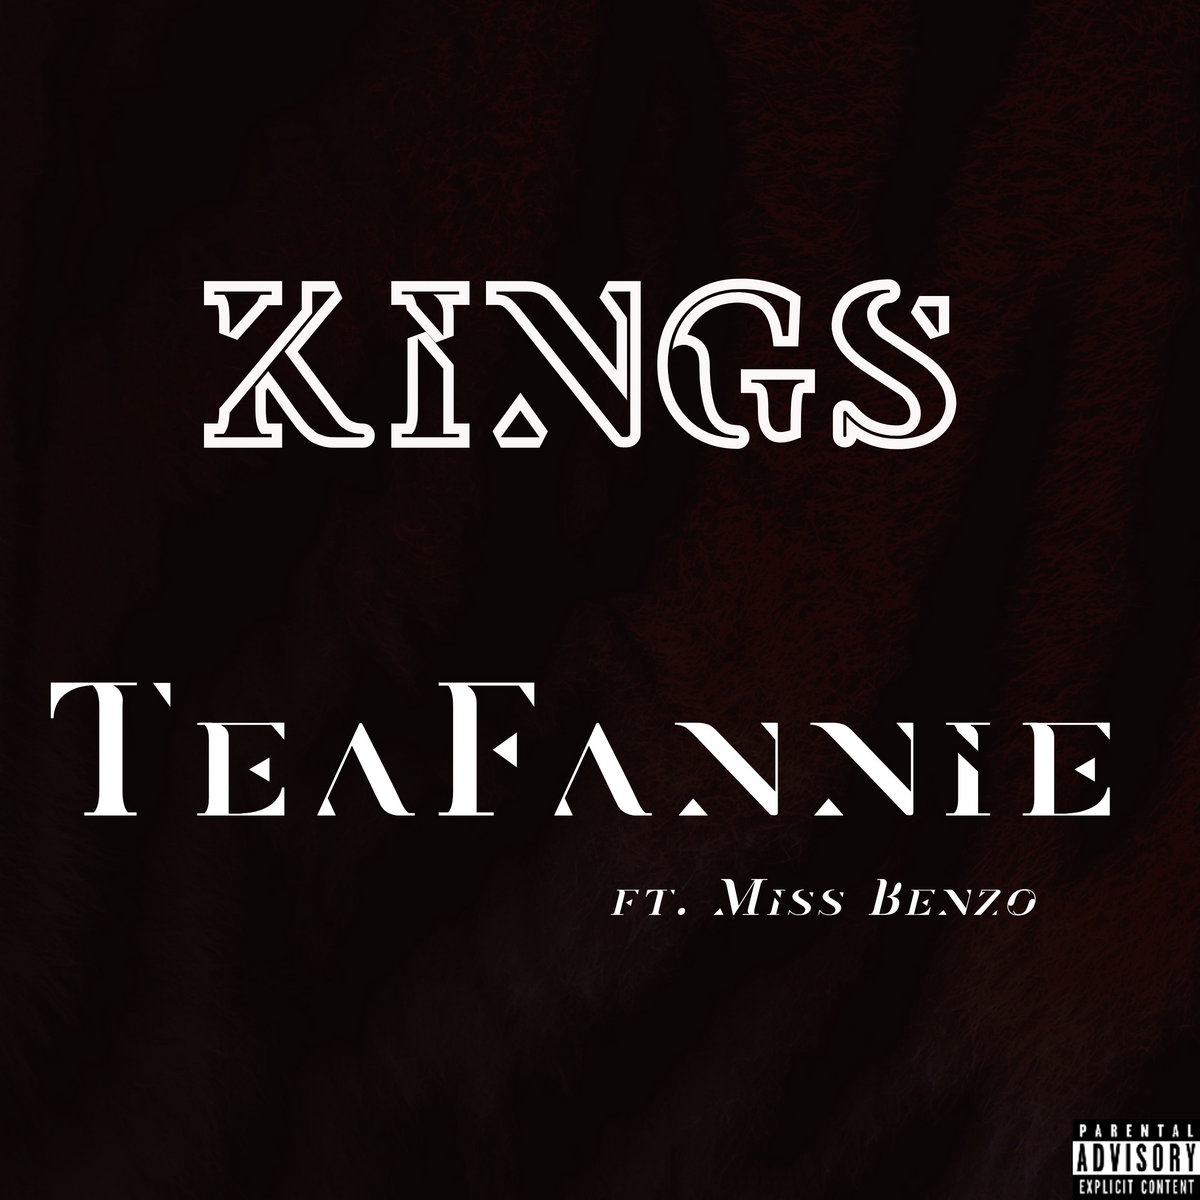 Kings (feat. Miss Benzo) by TeaFannie